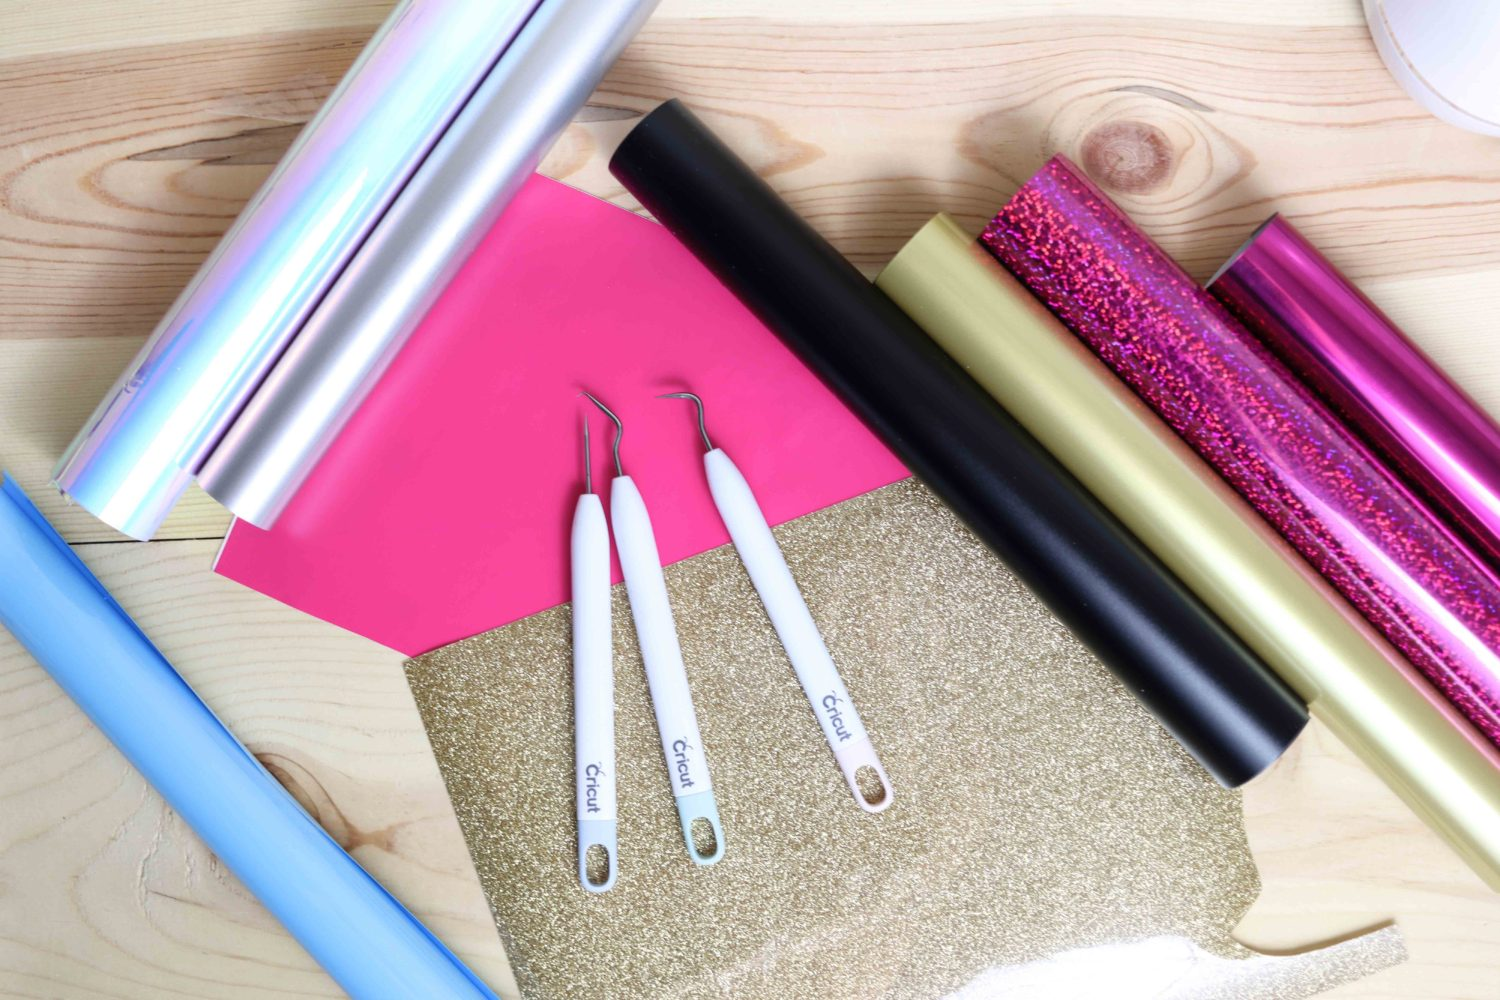 Different types of adhesive and heat transfer vinyl and weeder tools.